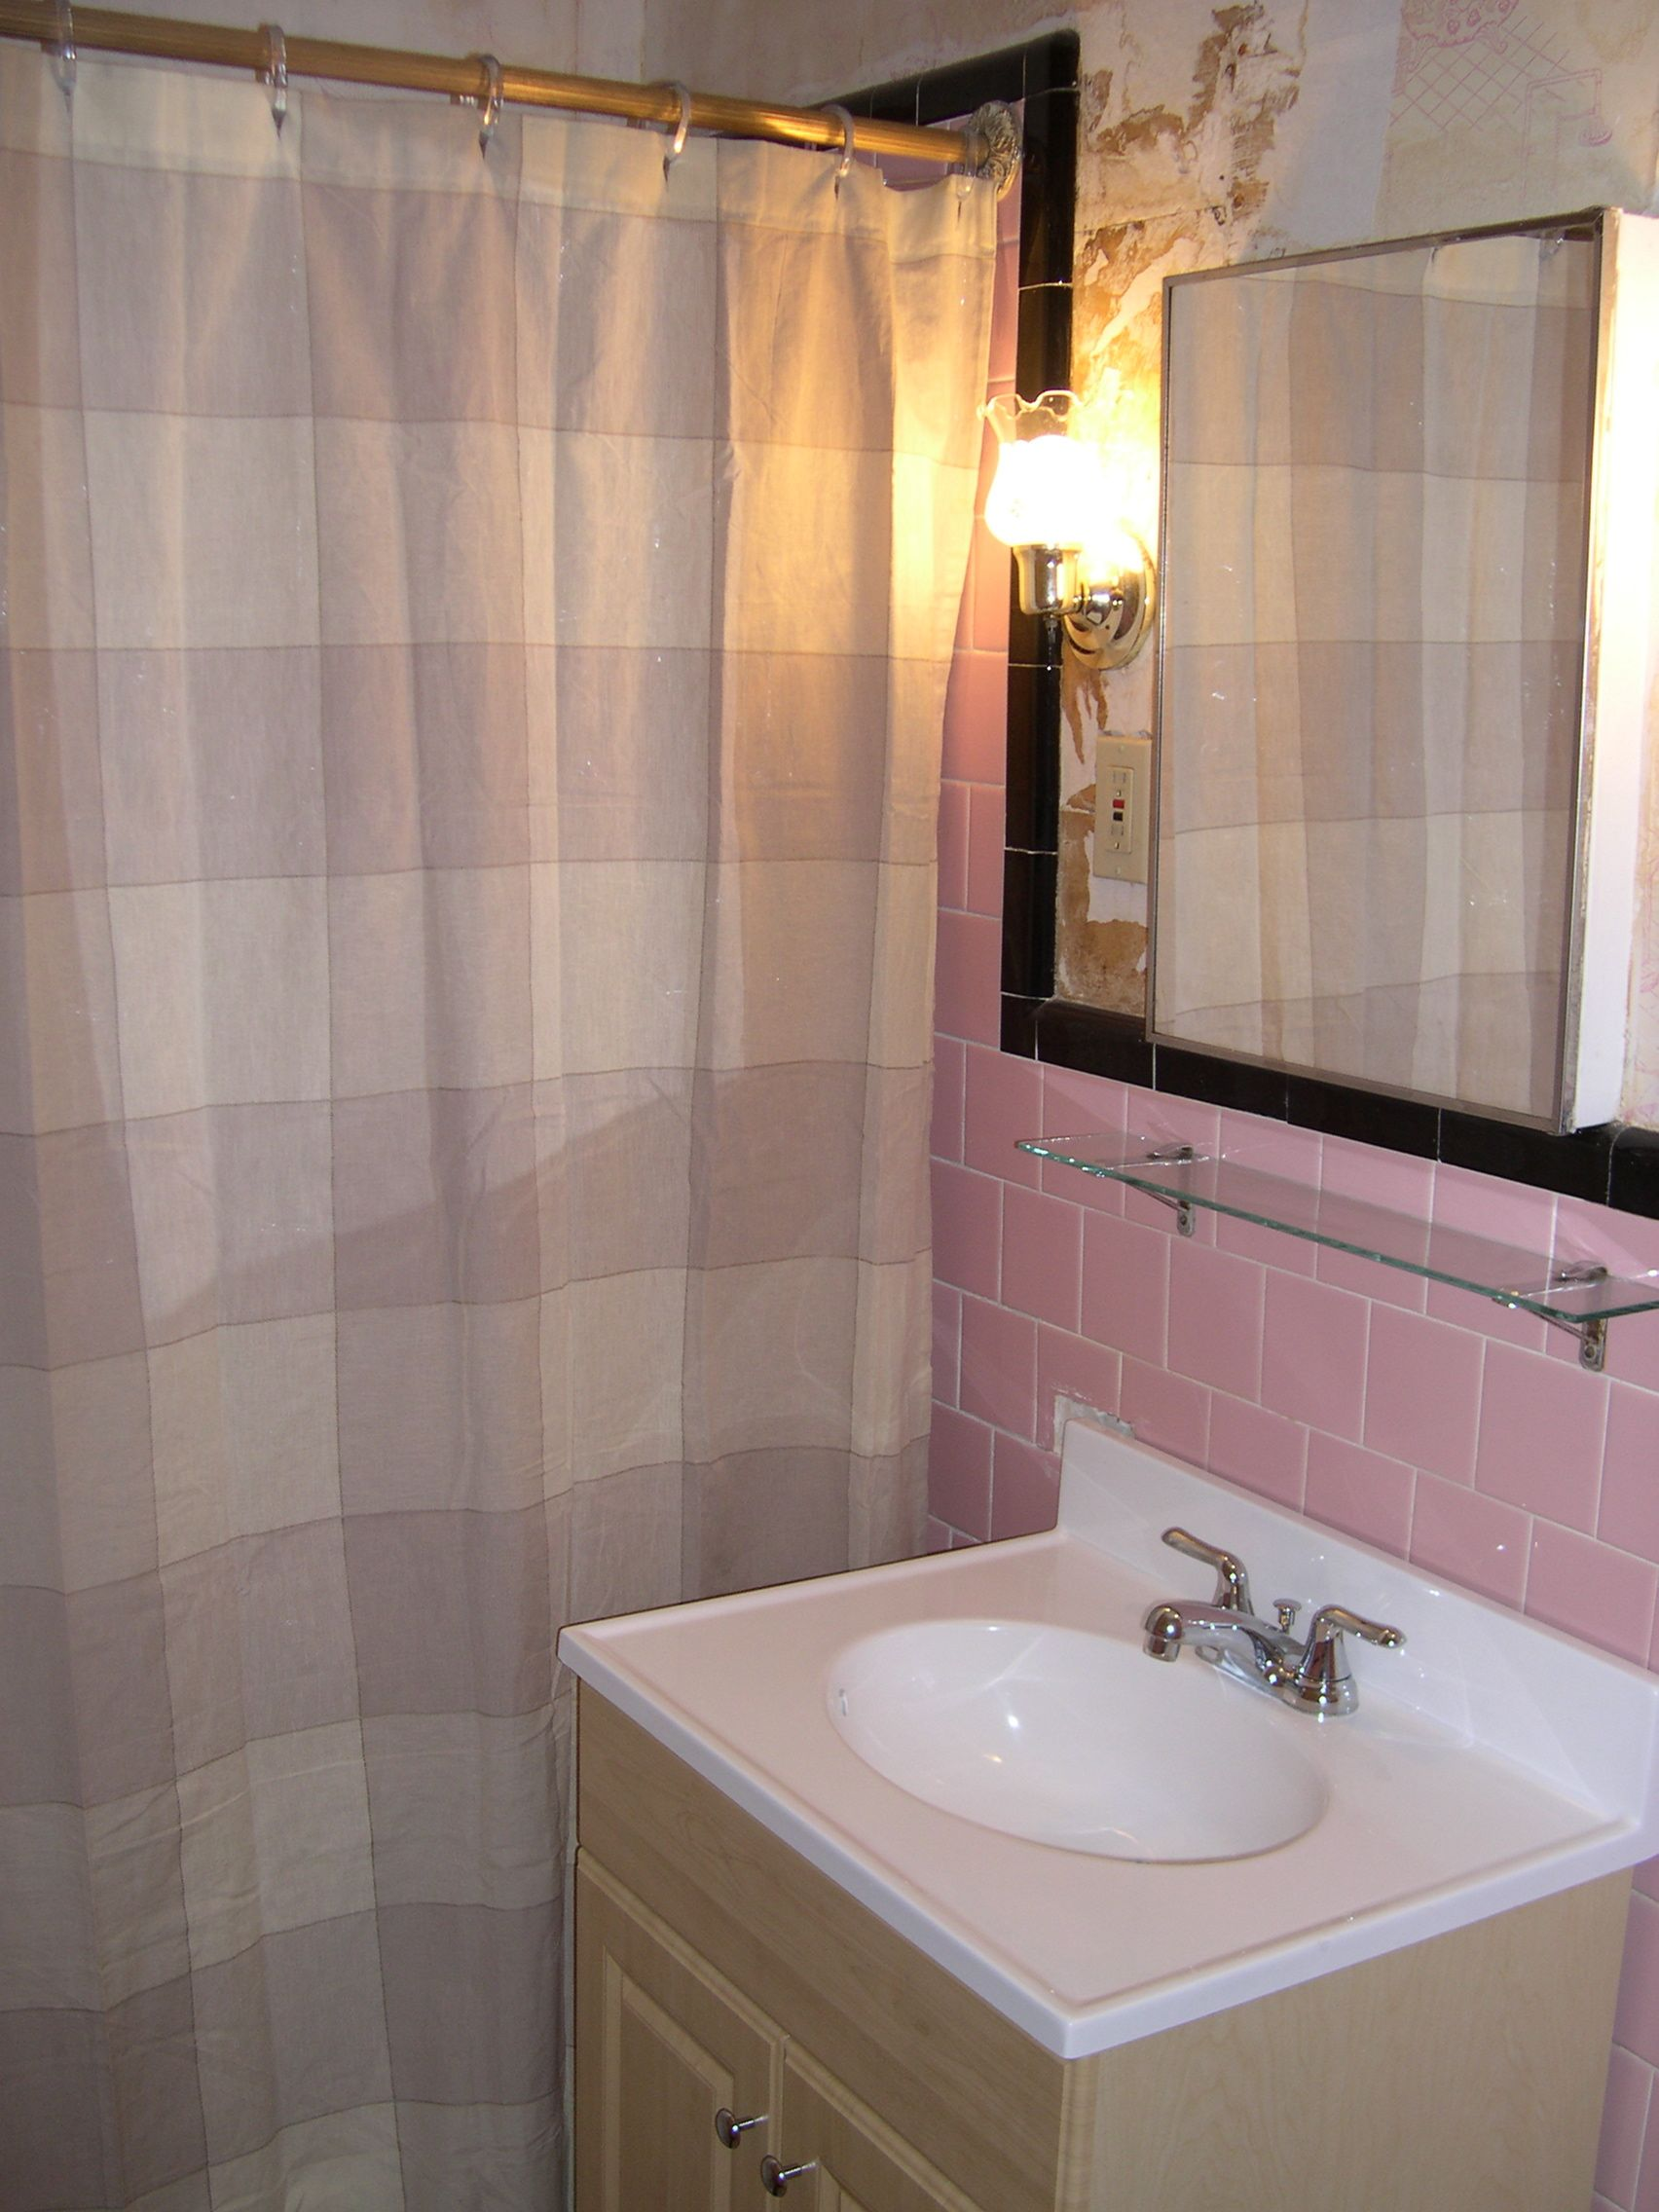 old bathroom tile ideas 40 vintage pink bathroom tile ideas and pictures 19785